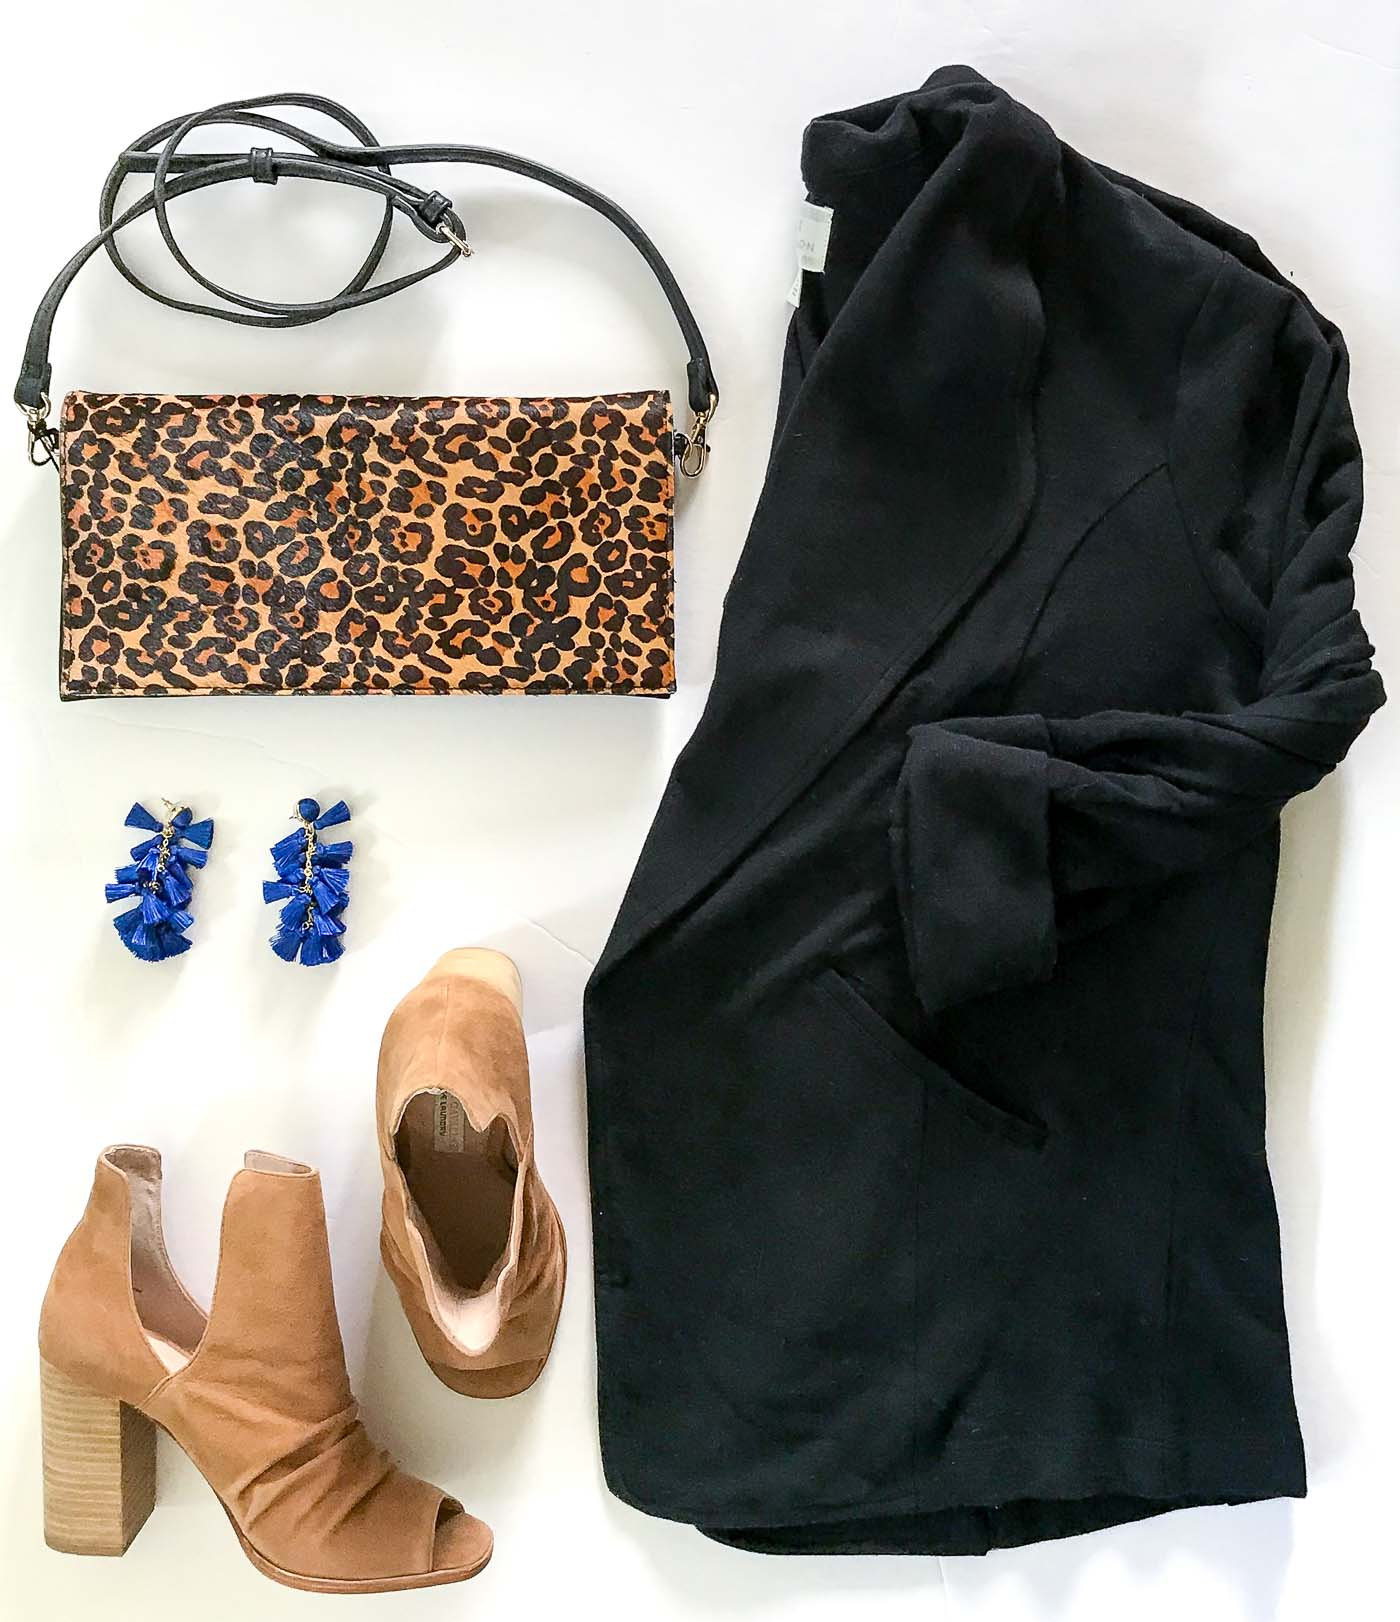 Nordstrom Anniversary Sale Women's- blazer and leopard clutch